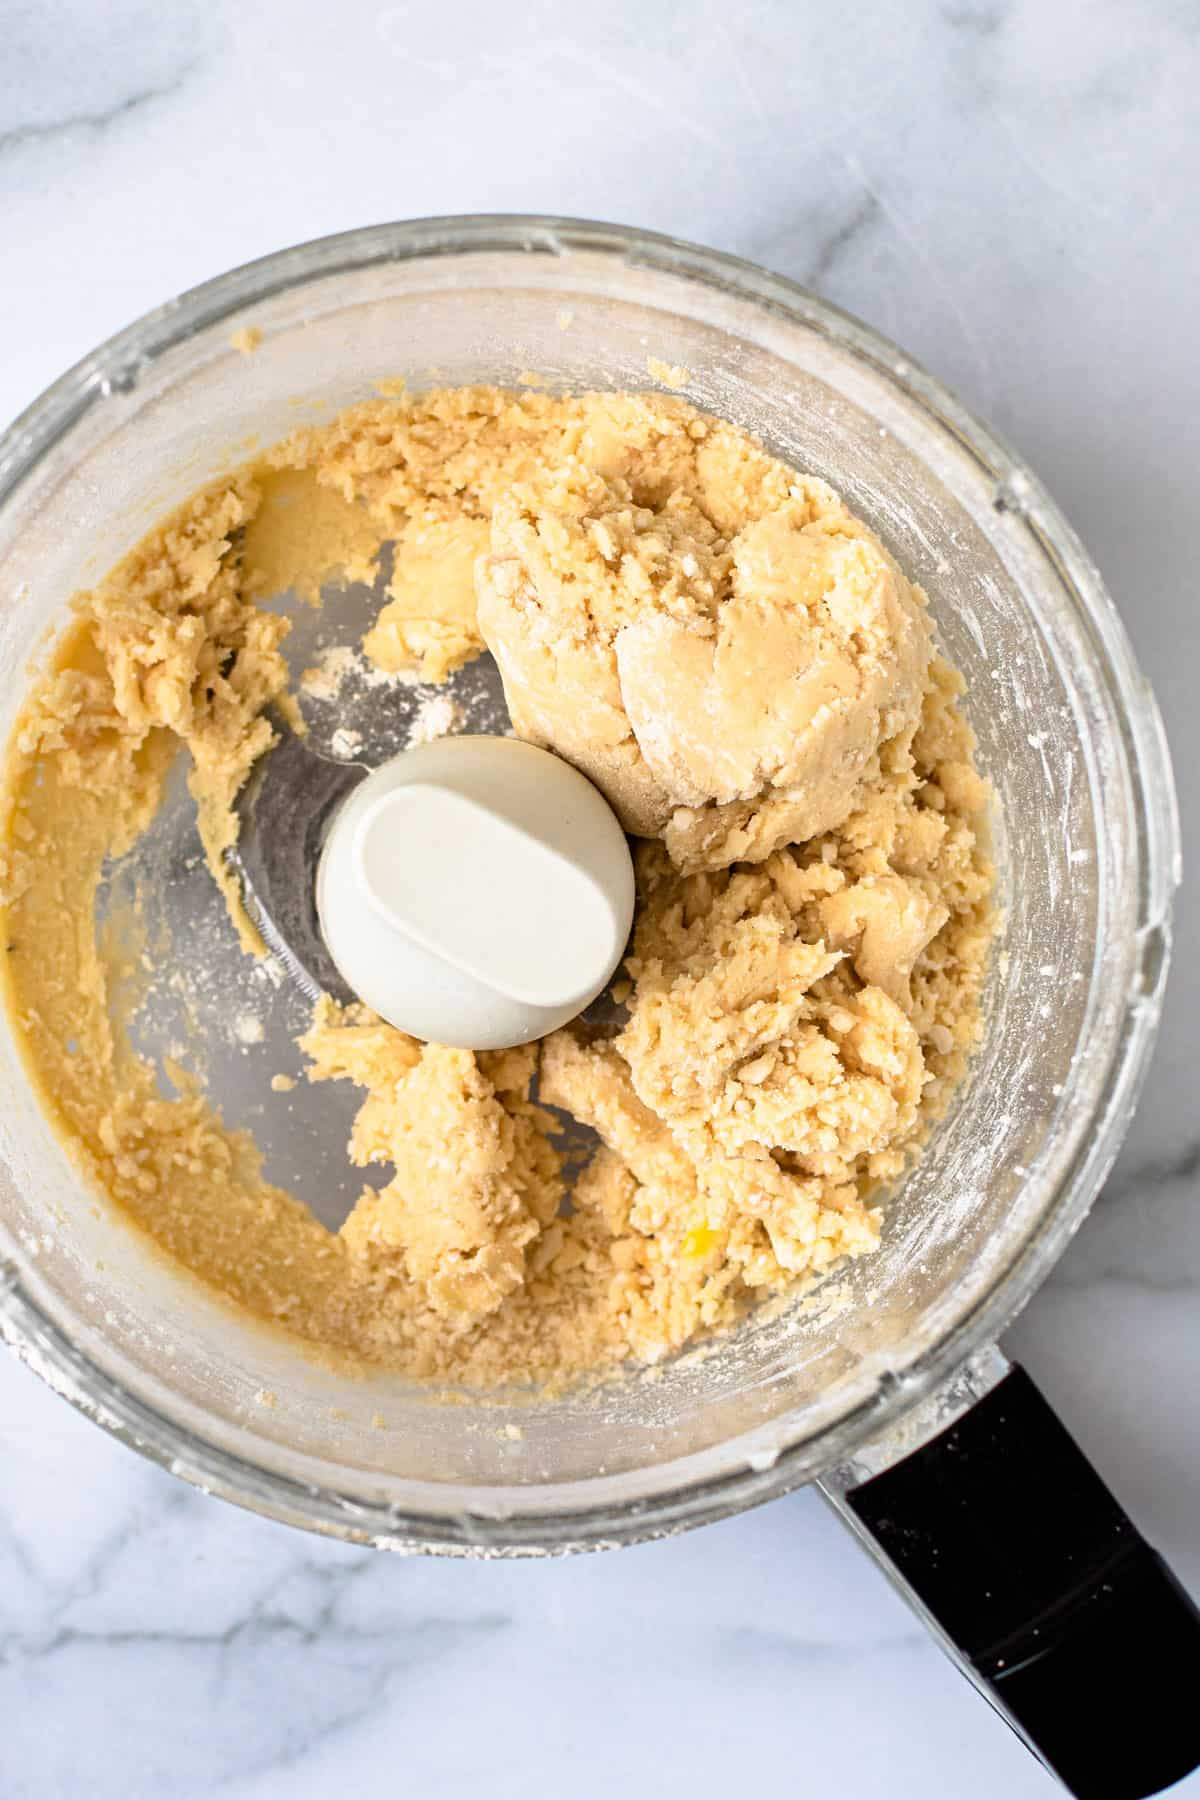 Pate Sablee dough in a food processor.